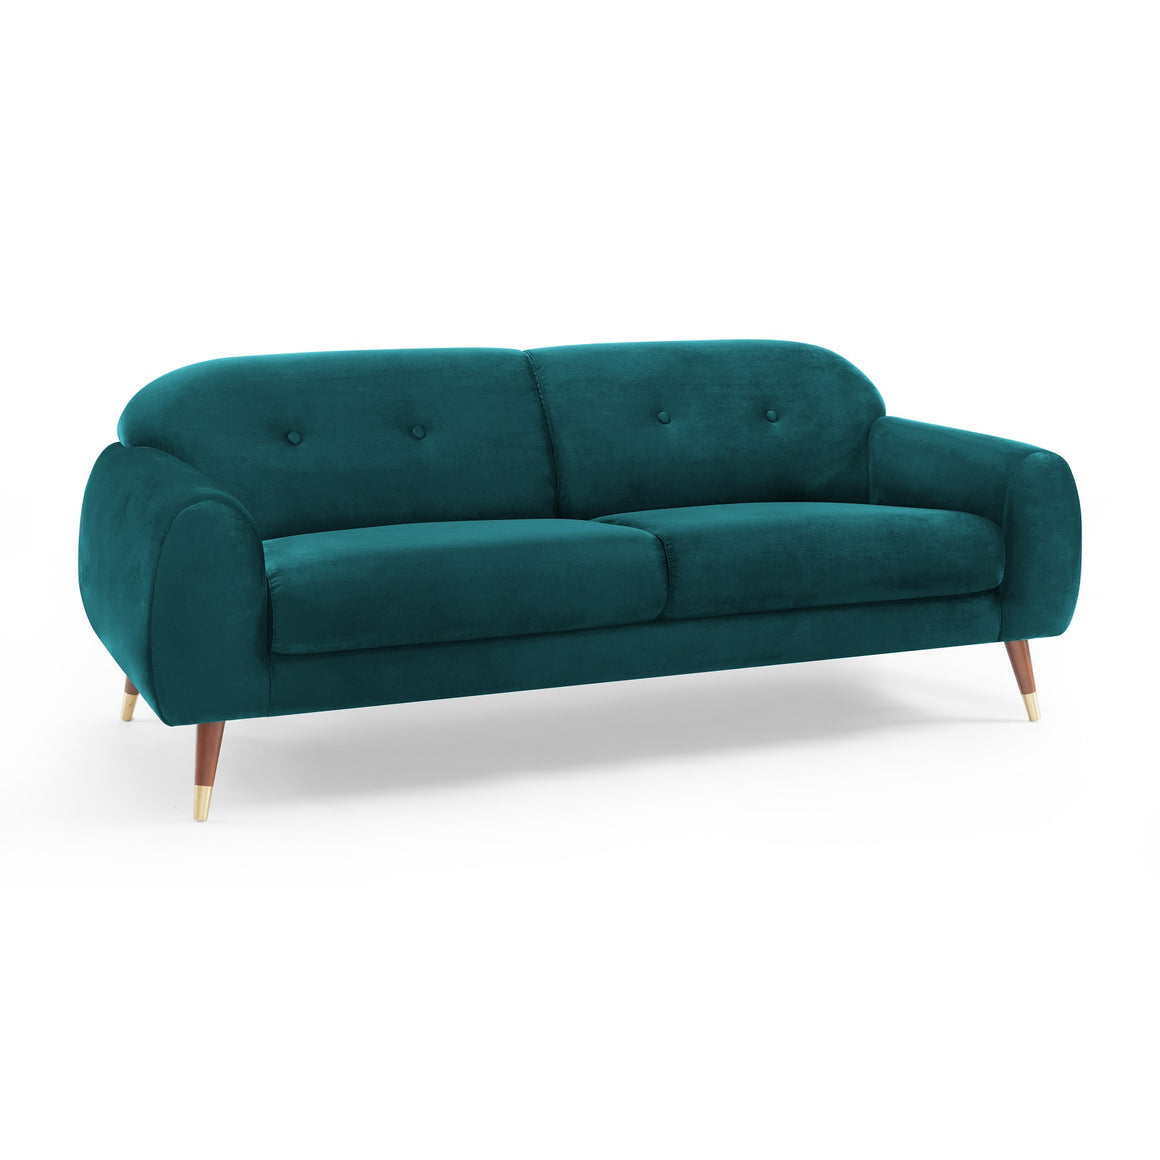 IRIS Velvet Sofa in Petro Green